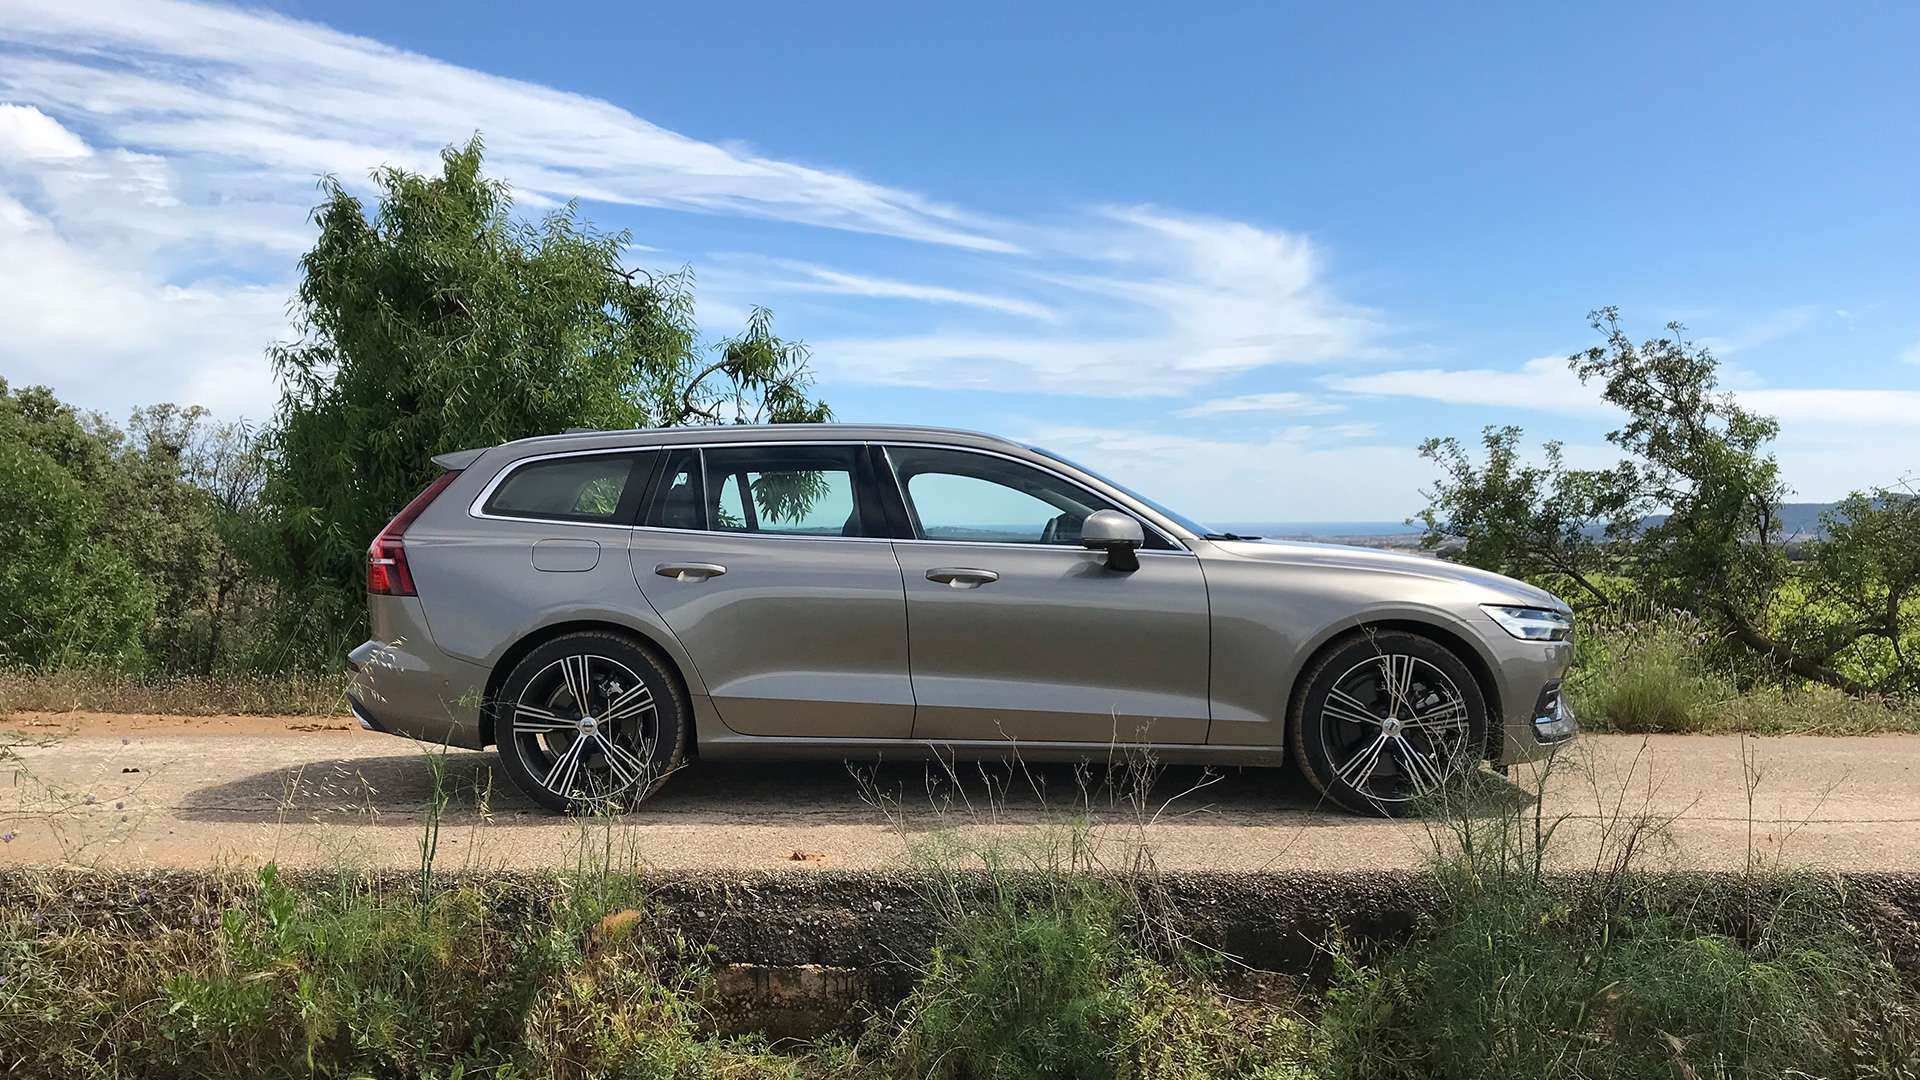 95 The 2019 Volvo V60 Cross Country Picture with 2019 Volvo V60 Cross Country